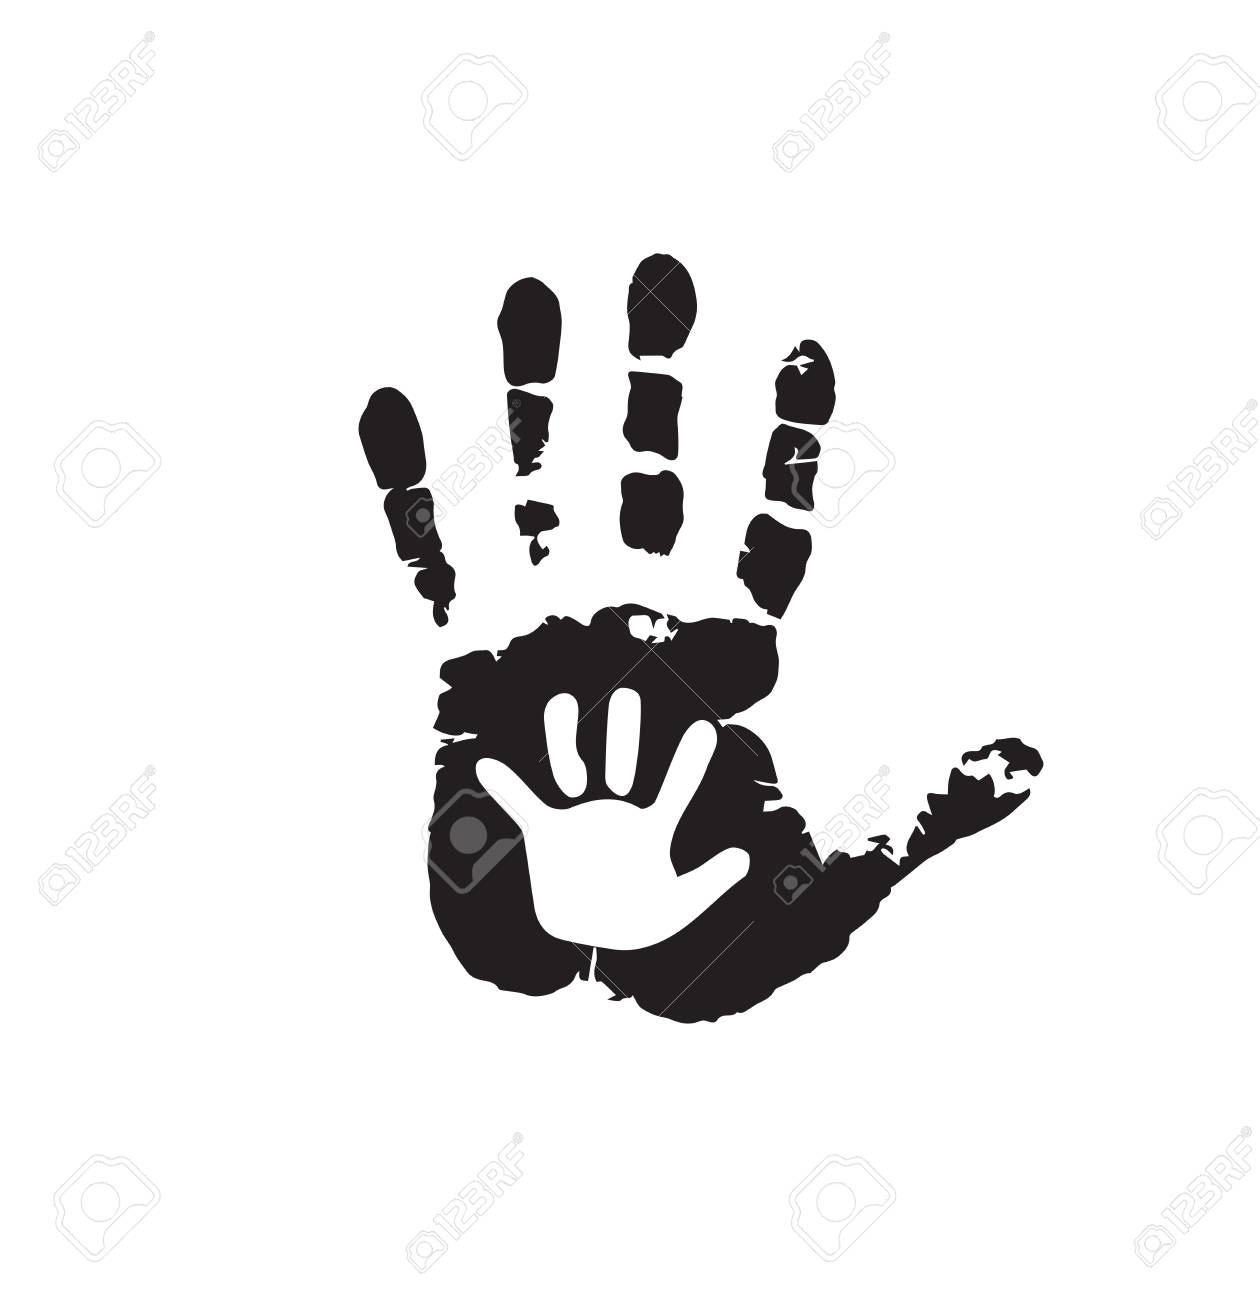 Black And White Silhouette Of Adult And Baby Hands On White